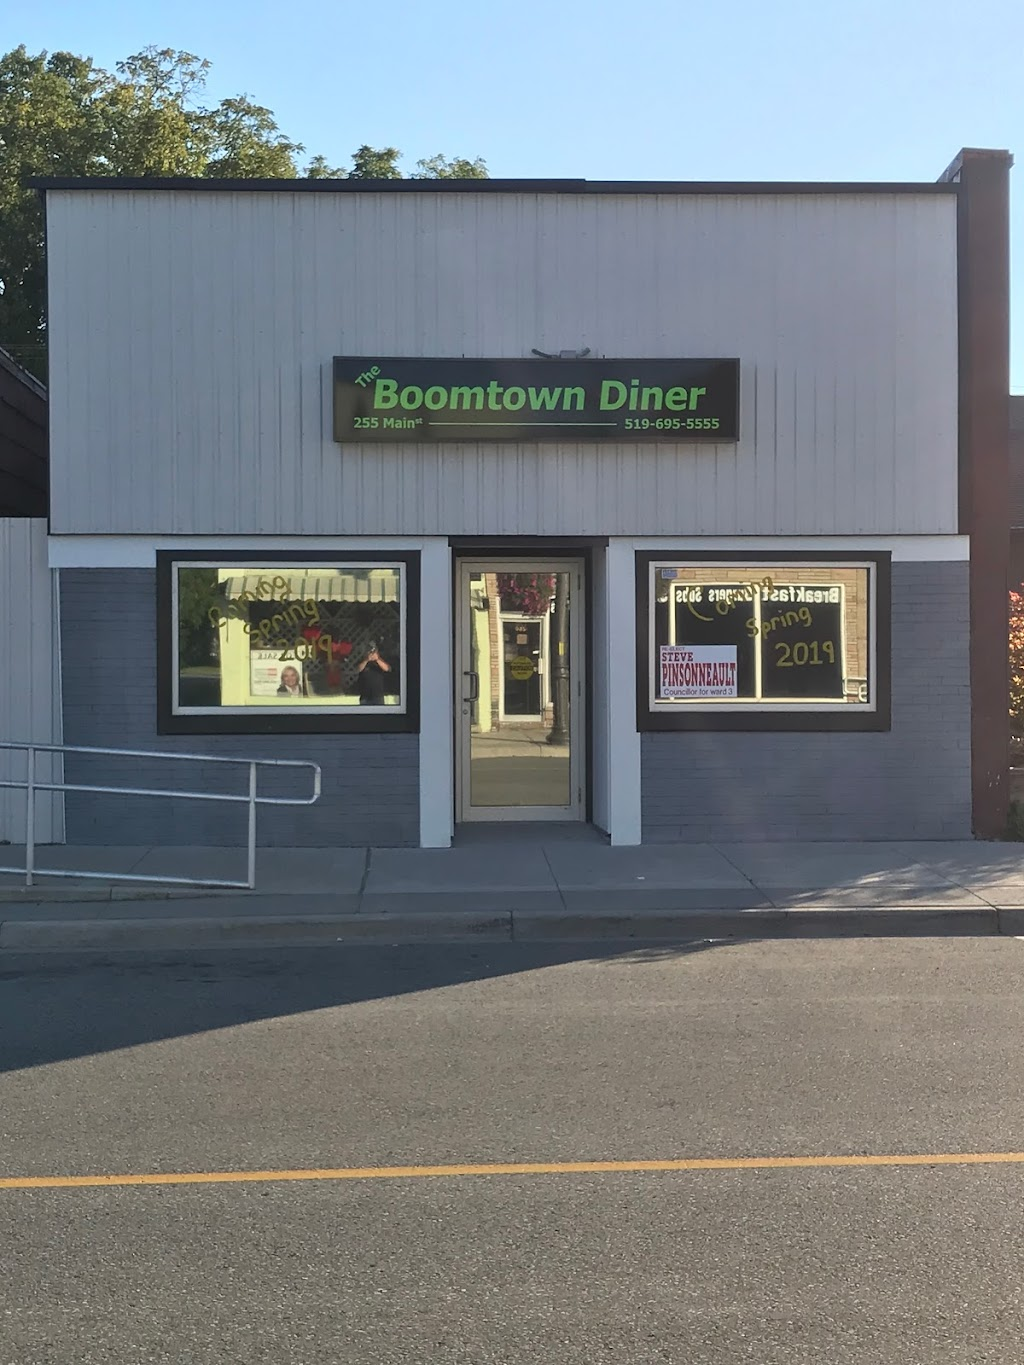 The Boomtown Diner   restaurant   255 Main St, Bothwell, ON N0P 1C0, Canada   5196955555 OR +1 519-695-5555